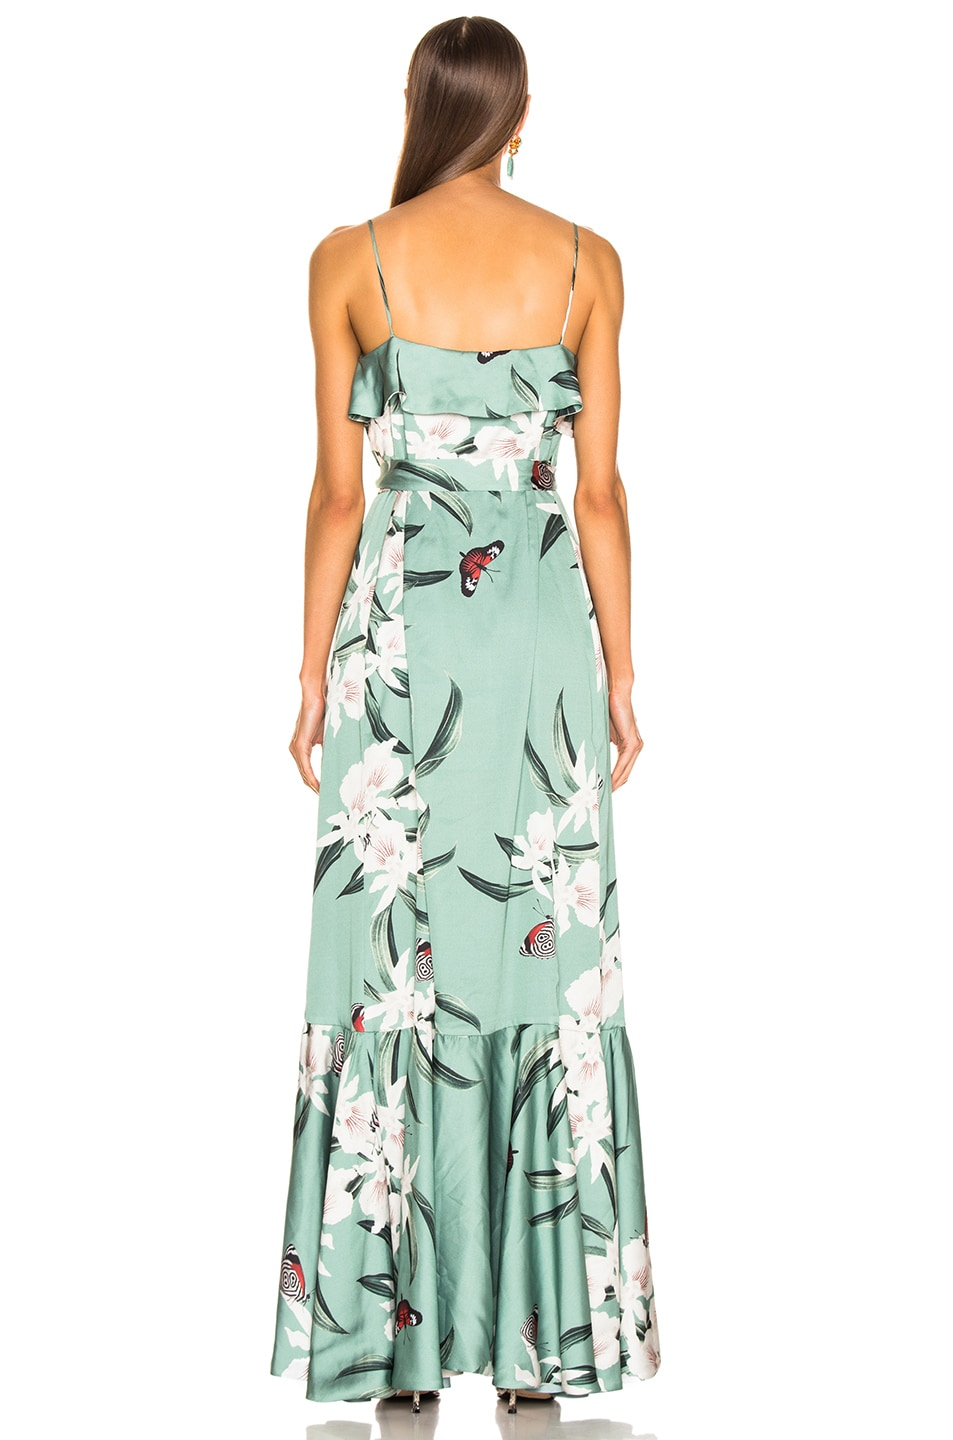 Image 3 of PatBo Orchid Print Maxi Wrap Dress in Jade